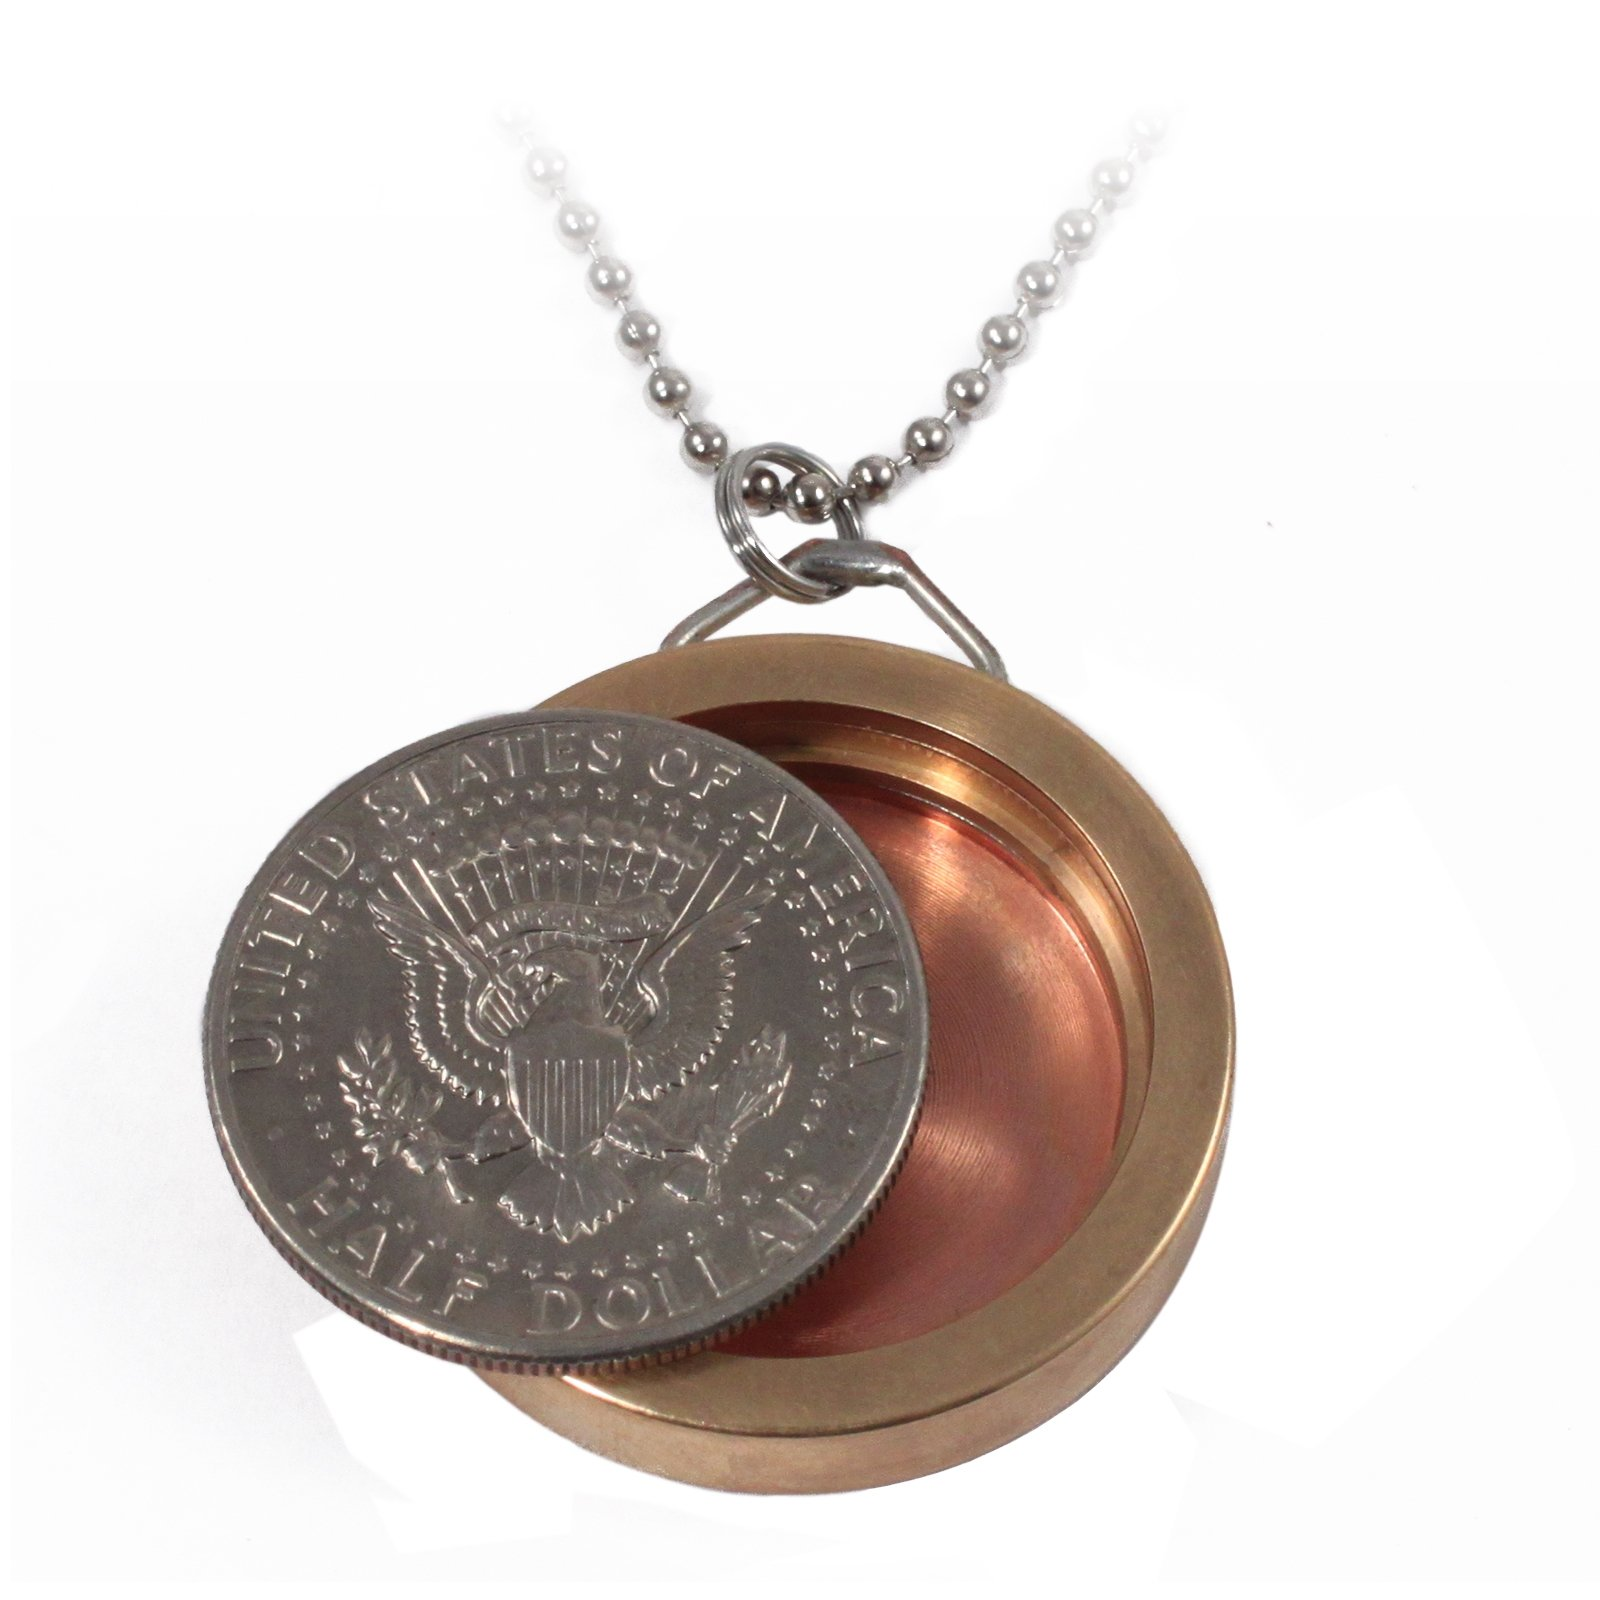 Half Dollar Pendant Neck Chain with Hidden Compartment